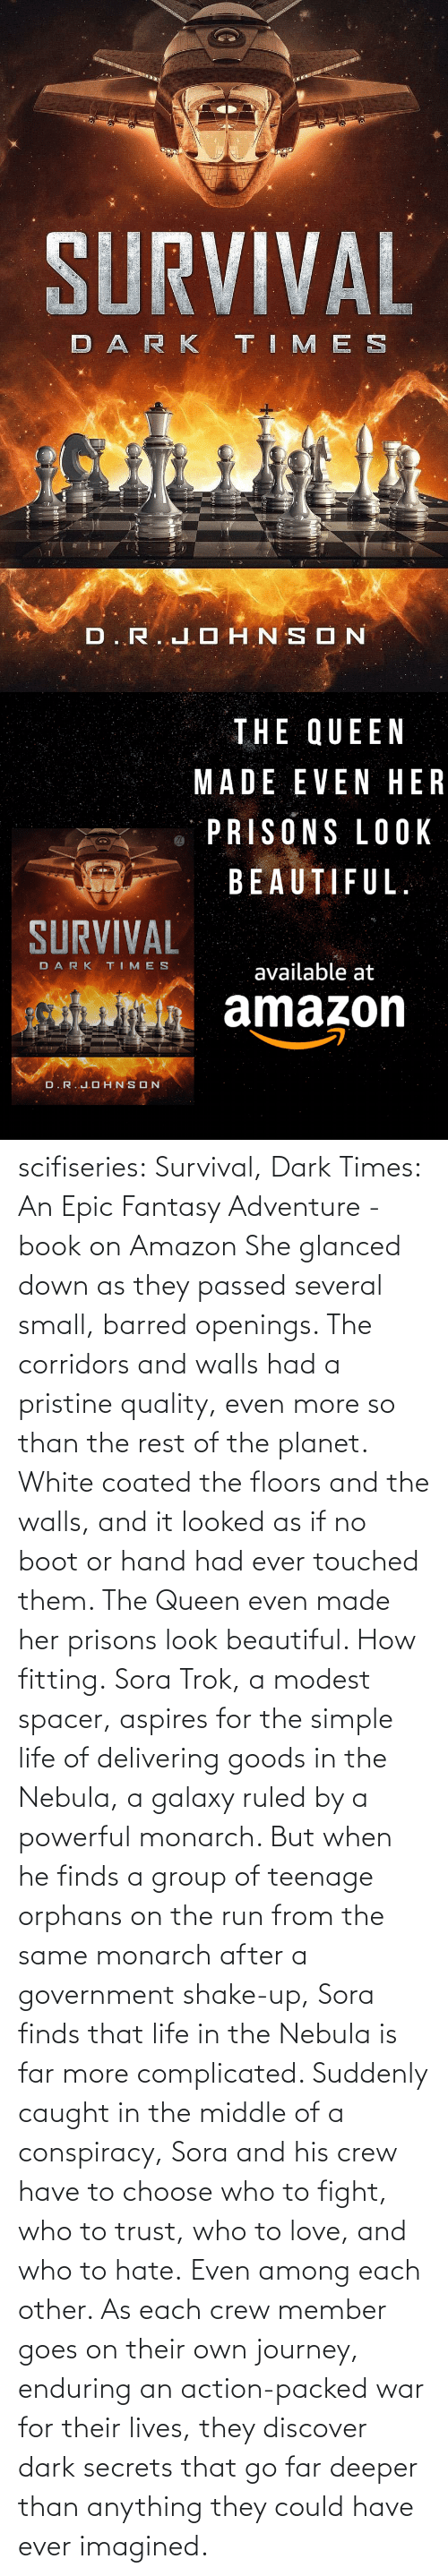 For The: scifiseries: Survival, Dark Times: An Epic Fantasy Adventure - book on Amazon  She glanced down as they  passed several small, barred openings. The corridors and walls had a  pristine quality, even more so than the rest of the planet. White coated  the floors and the walls, and it looked as if no boot or hand had ever  touched them.  The Queen even made her prisons look beautiful.  How fitting. Sora  Trok, a modest spacer, aspires for the simple life of delivering goods  in the Nebula, a galaxy ruled by a powerful monarch. But when he finds a  group of teenage orphans on the run from the same monarch after a  government shake-up, Sora finds that life in the Nebula is far more complicated.  Suddenly  caught in the middle of a conspiracy, Sora and his crew have to choose  who to fight, who to trust, who to love, and who to hate. Even among each other.  As  each crew member goes on their own journey, enduring an action-packed  war for their lives, they discover dark secrets that go far deeper than  anything they could have ever imagined.